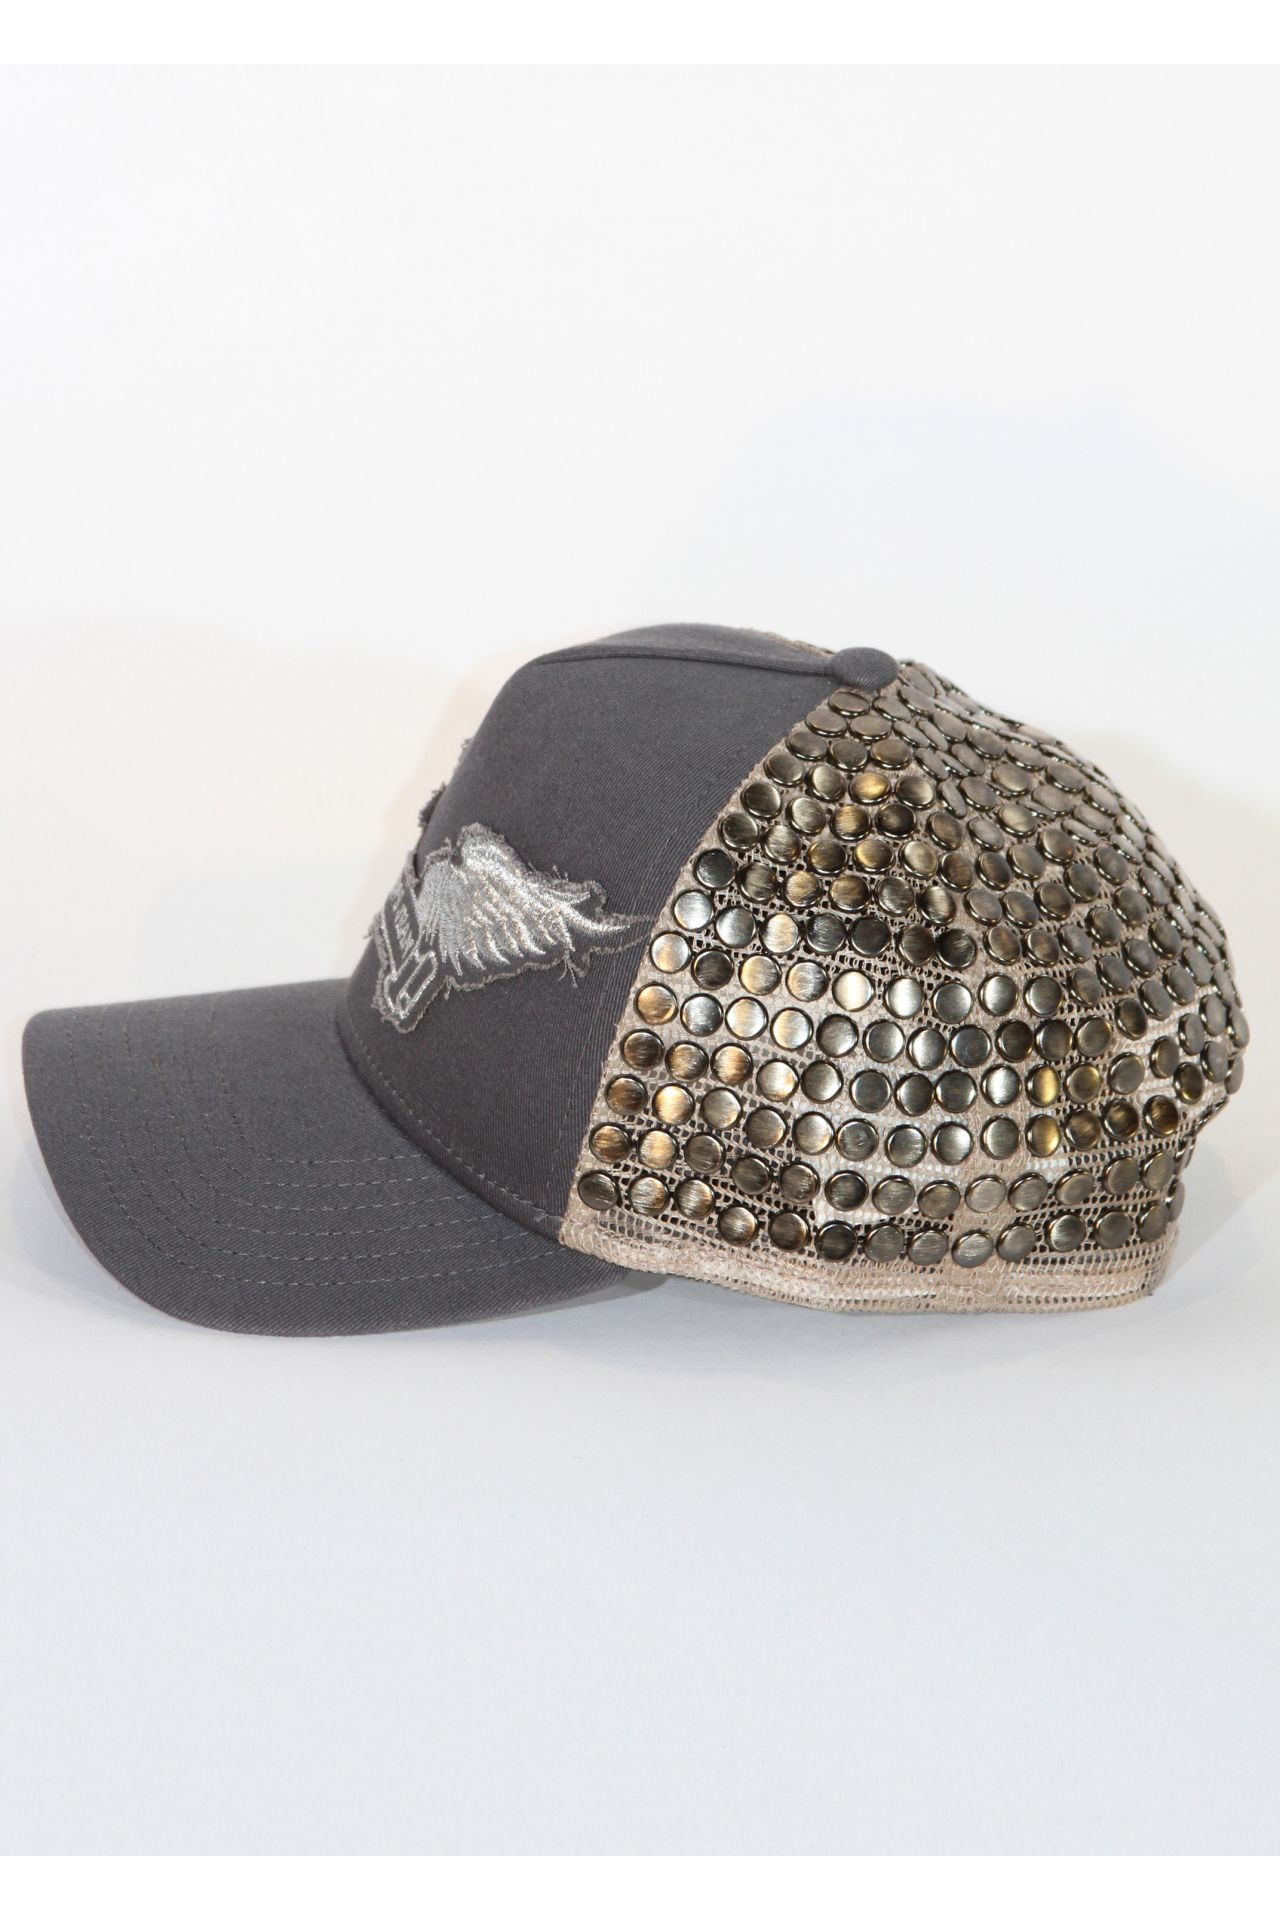 TRUCKER HAT IN CHARCOAL WITH FLAT METAL STUDS